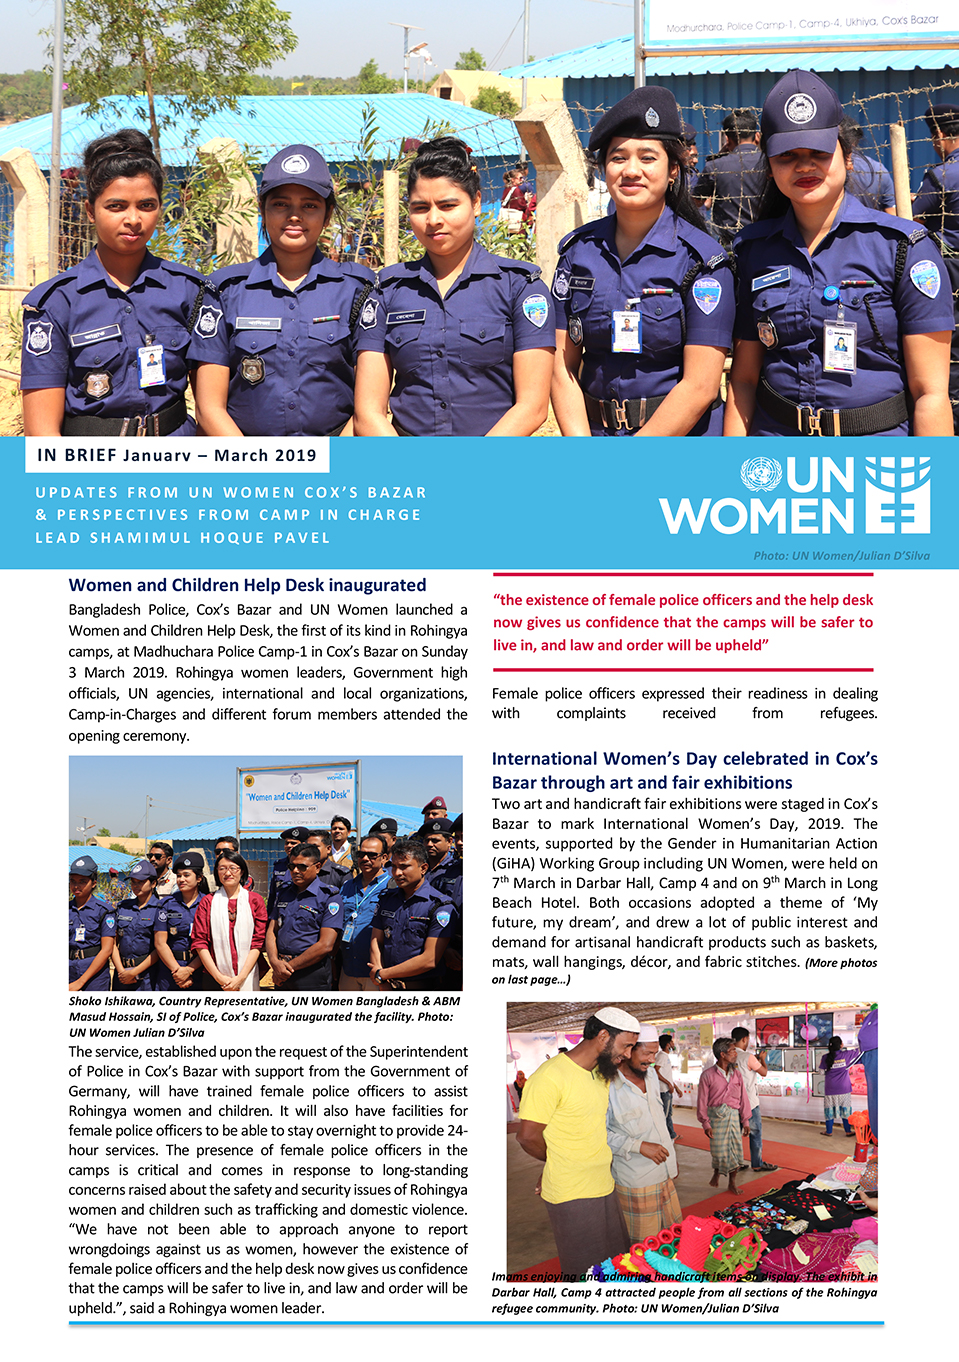 UPDATES FROM UN WOMEN COX'S BAZAR & PERSPECTIVES FROM CAMP IN CHARGE LEAD SHAMIMUL HOQUE PAVEL